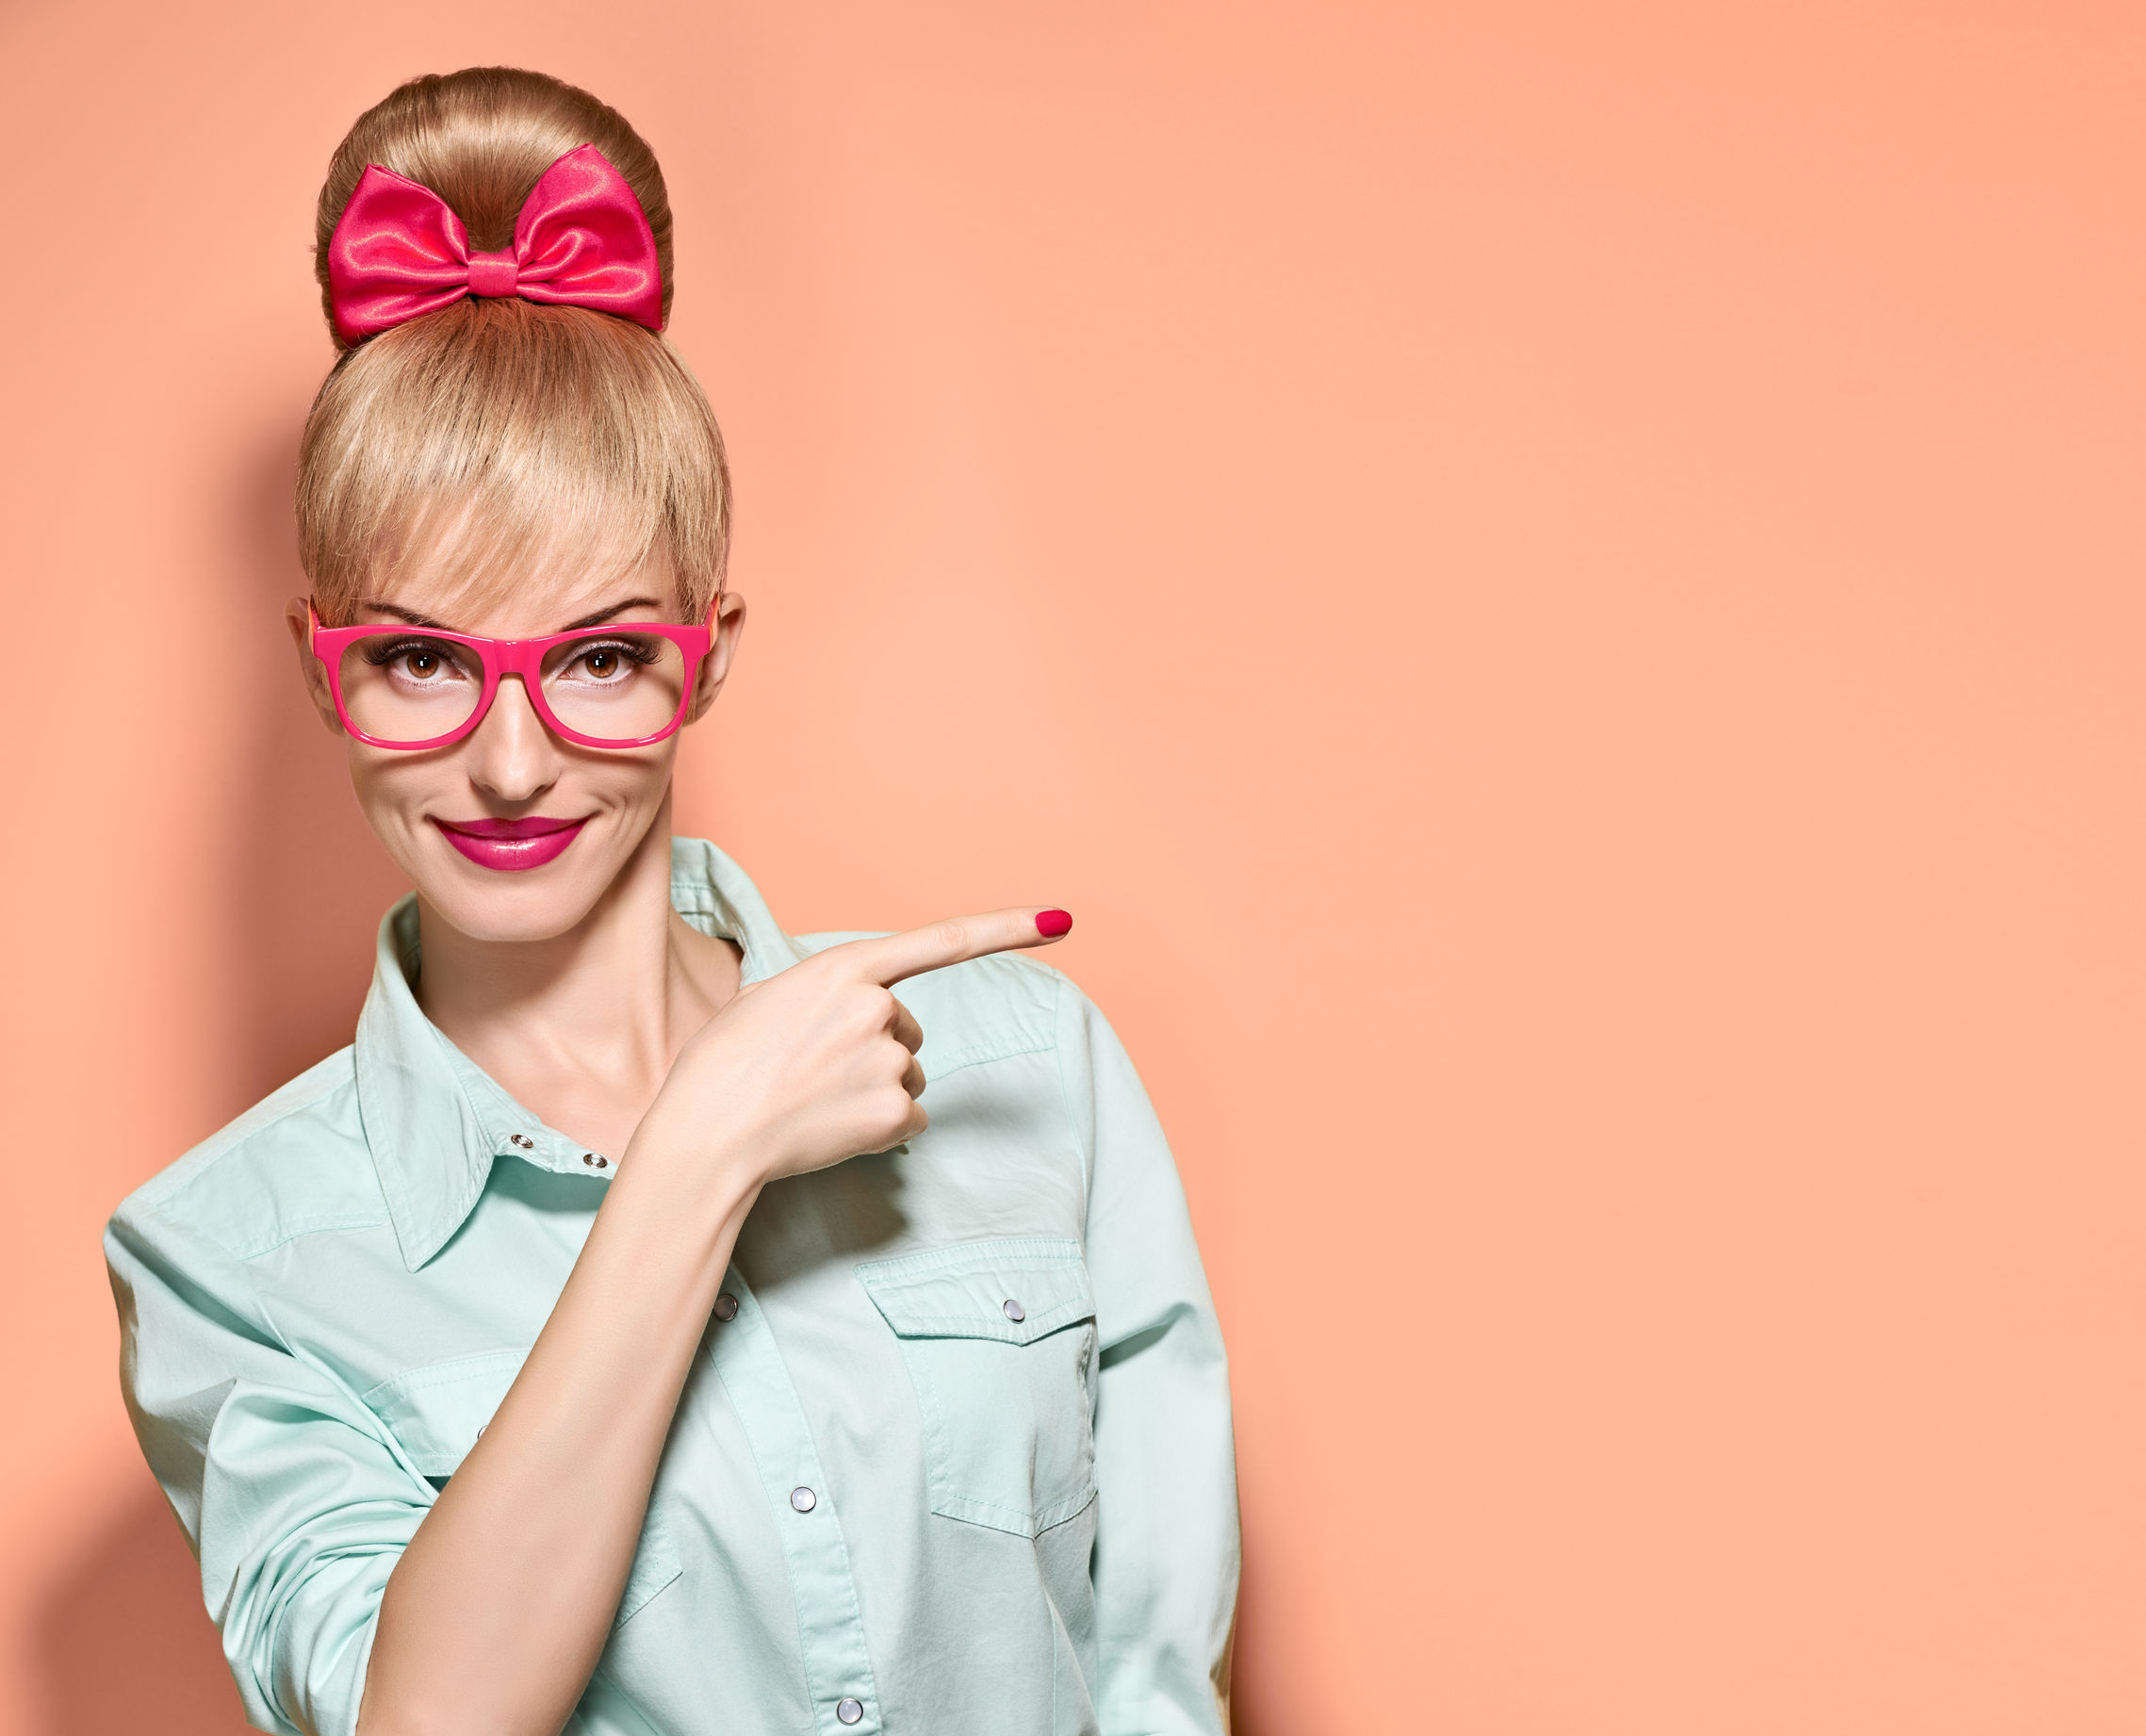 54853441 - beauty fashion woman in stylish glasses shows finger. attractive happy blonde hipster girl smiling, emotional. confidence, success, pinup hairstyle. unusual playful, expression nerd. vintageon pink